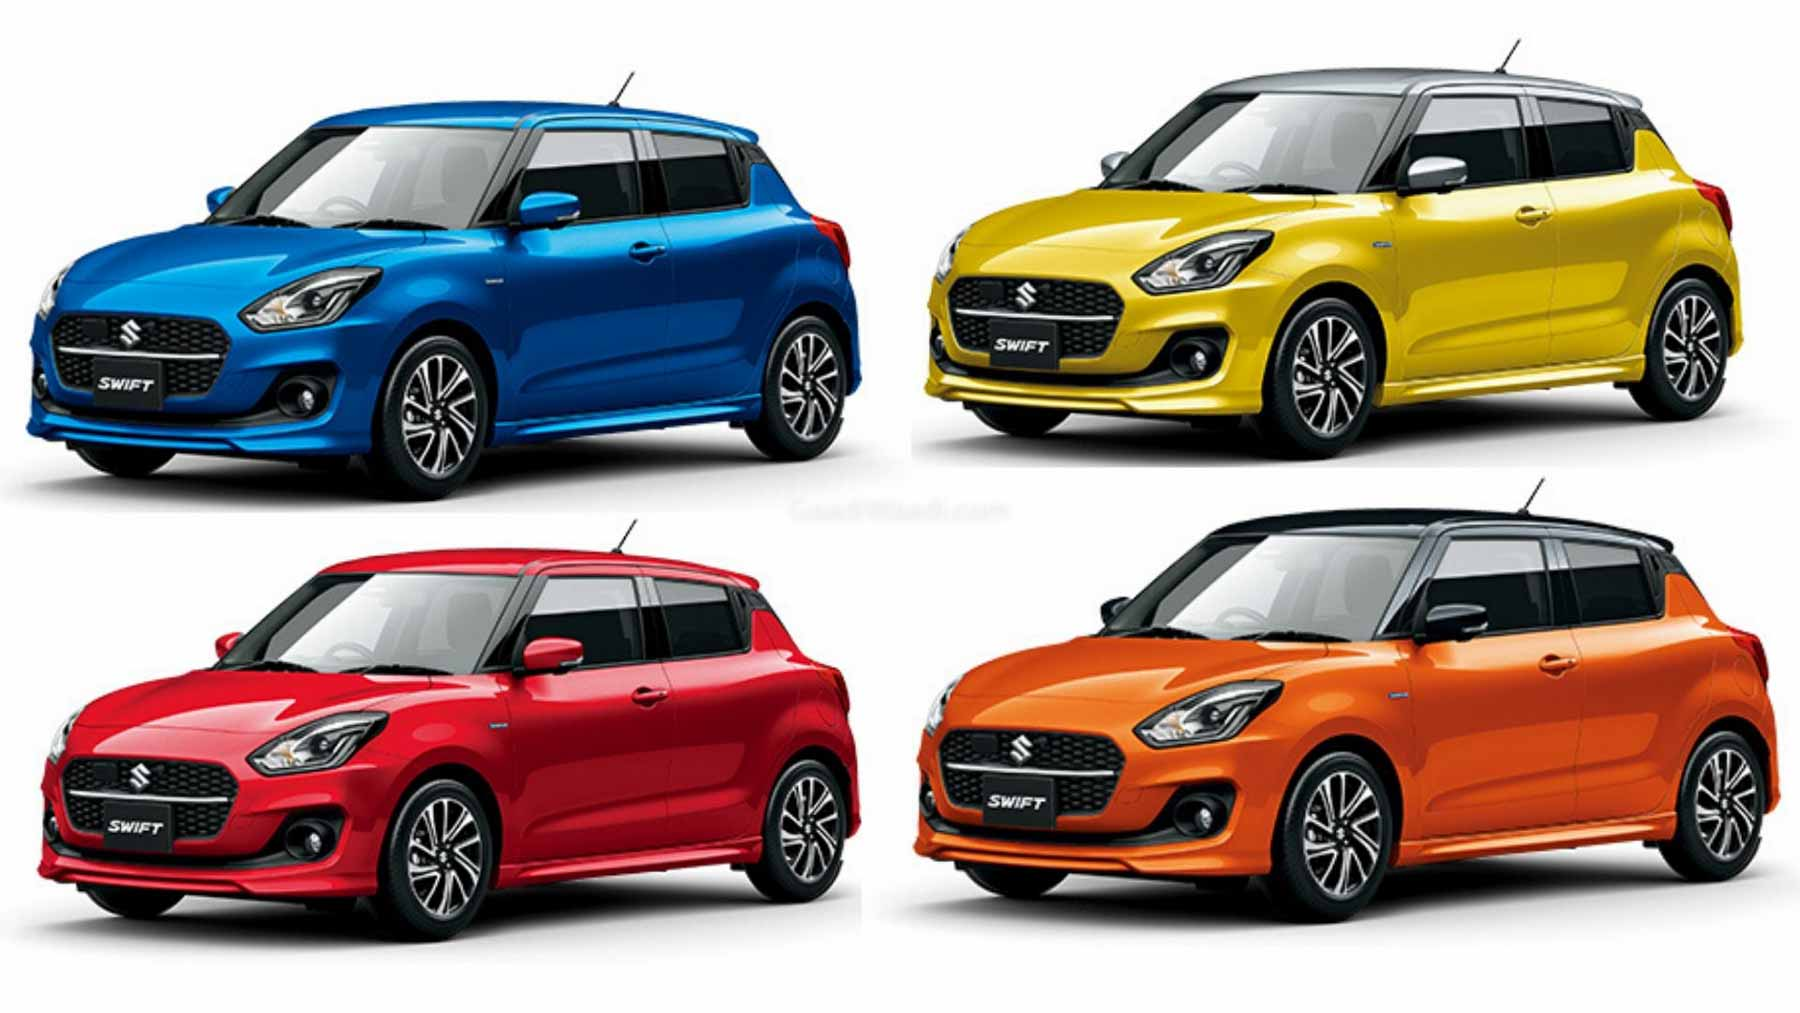 2020 Swift Facelift – All 10 Colours, Specs & Features Explained